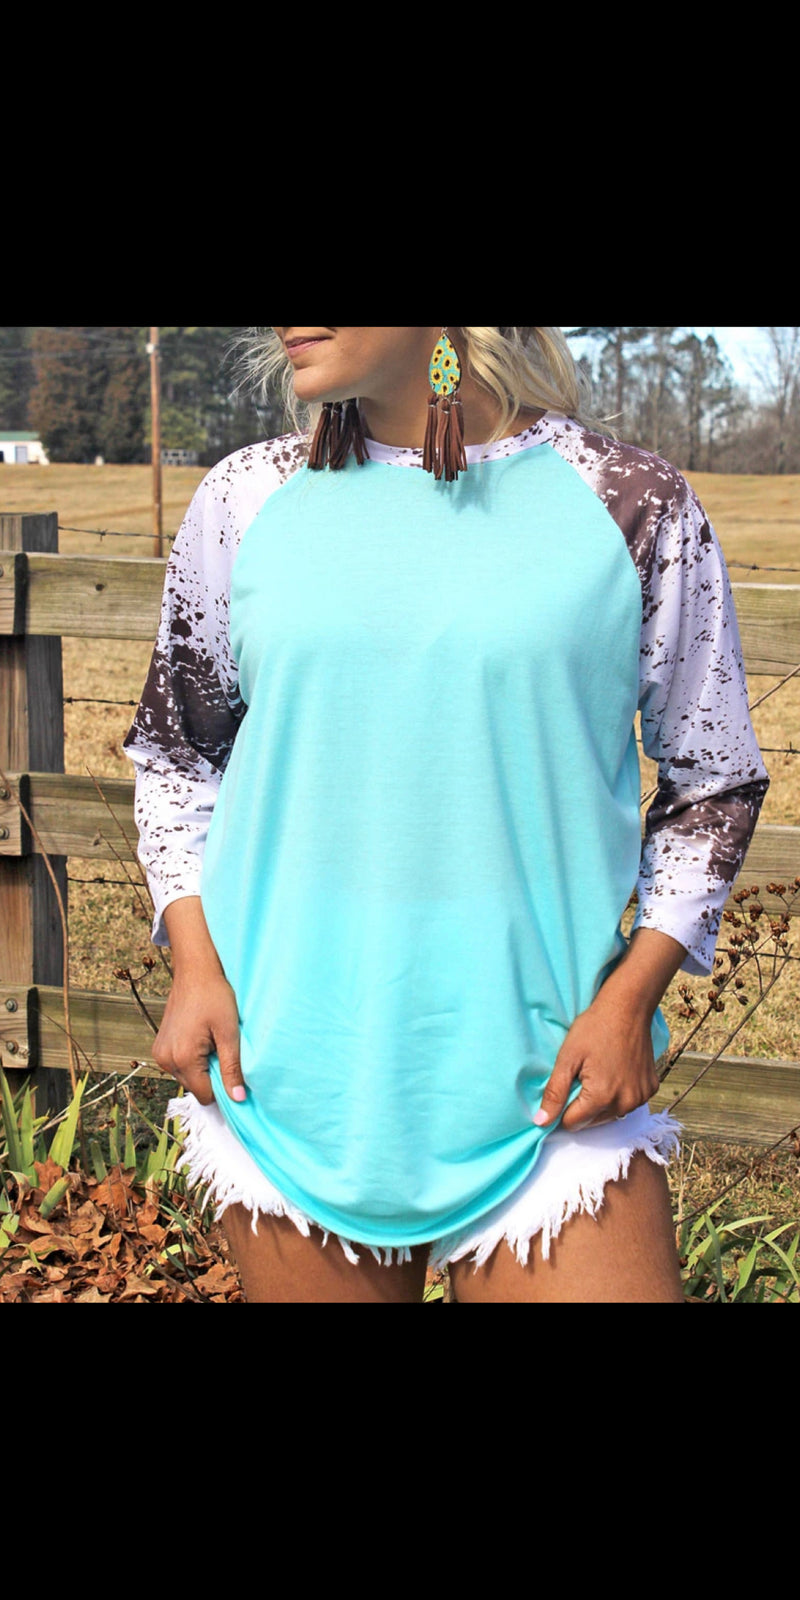 Waco Cowhide Top - Also in Plus Size